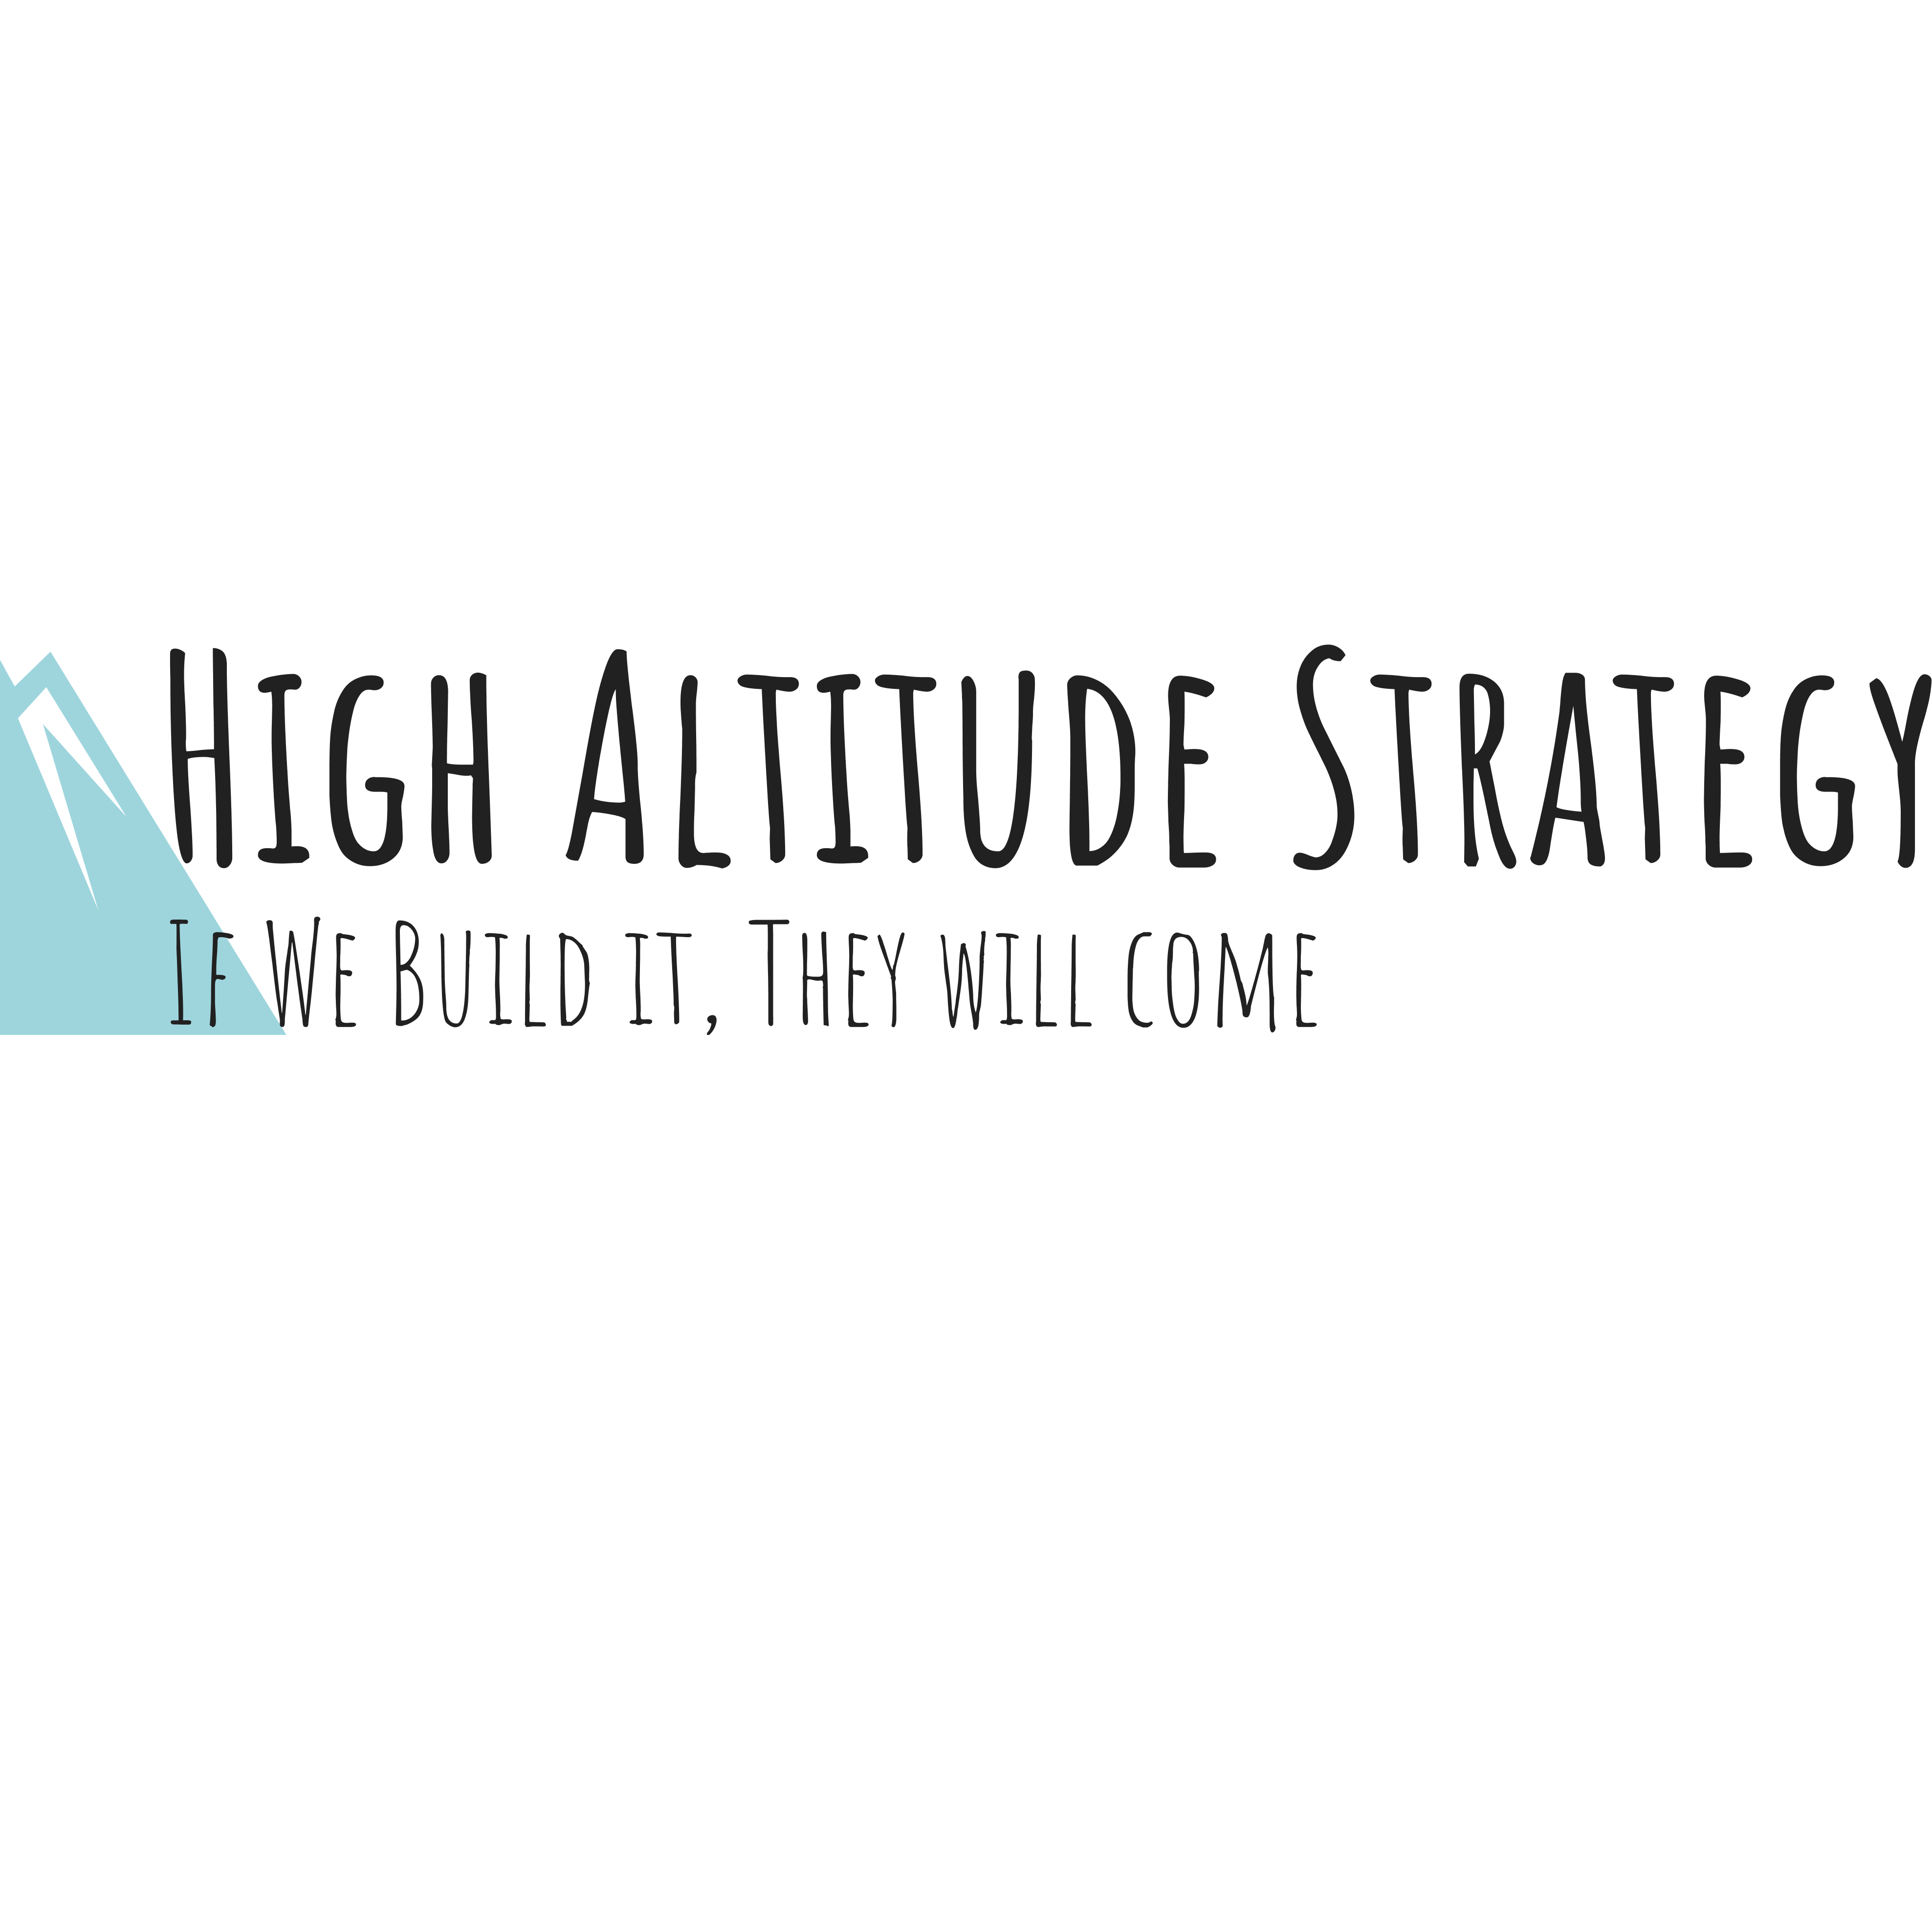 High Altitude Strategy